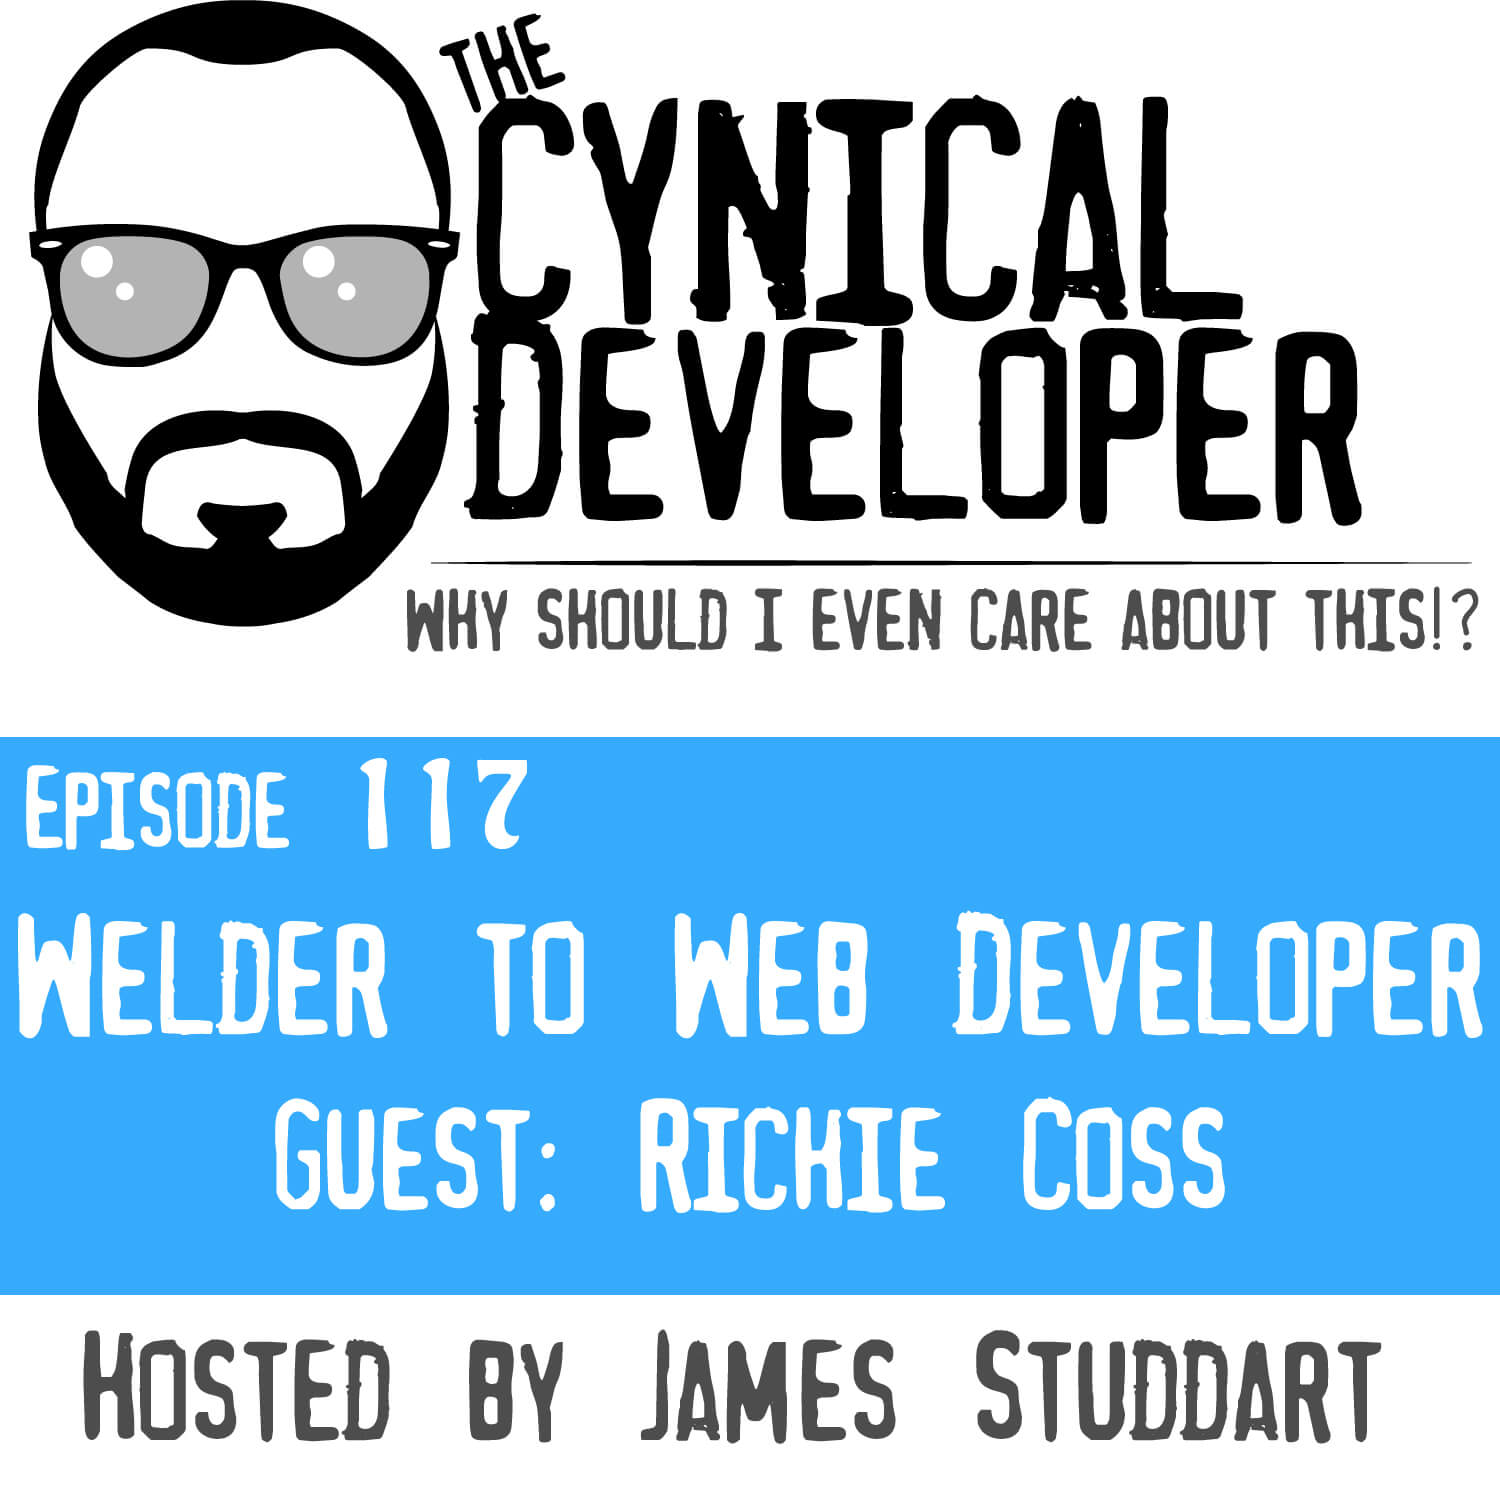 Episode 117 - Welder to Web Developer